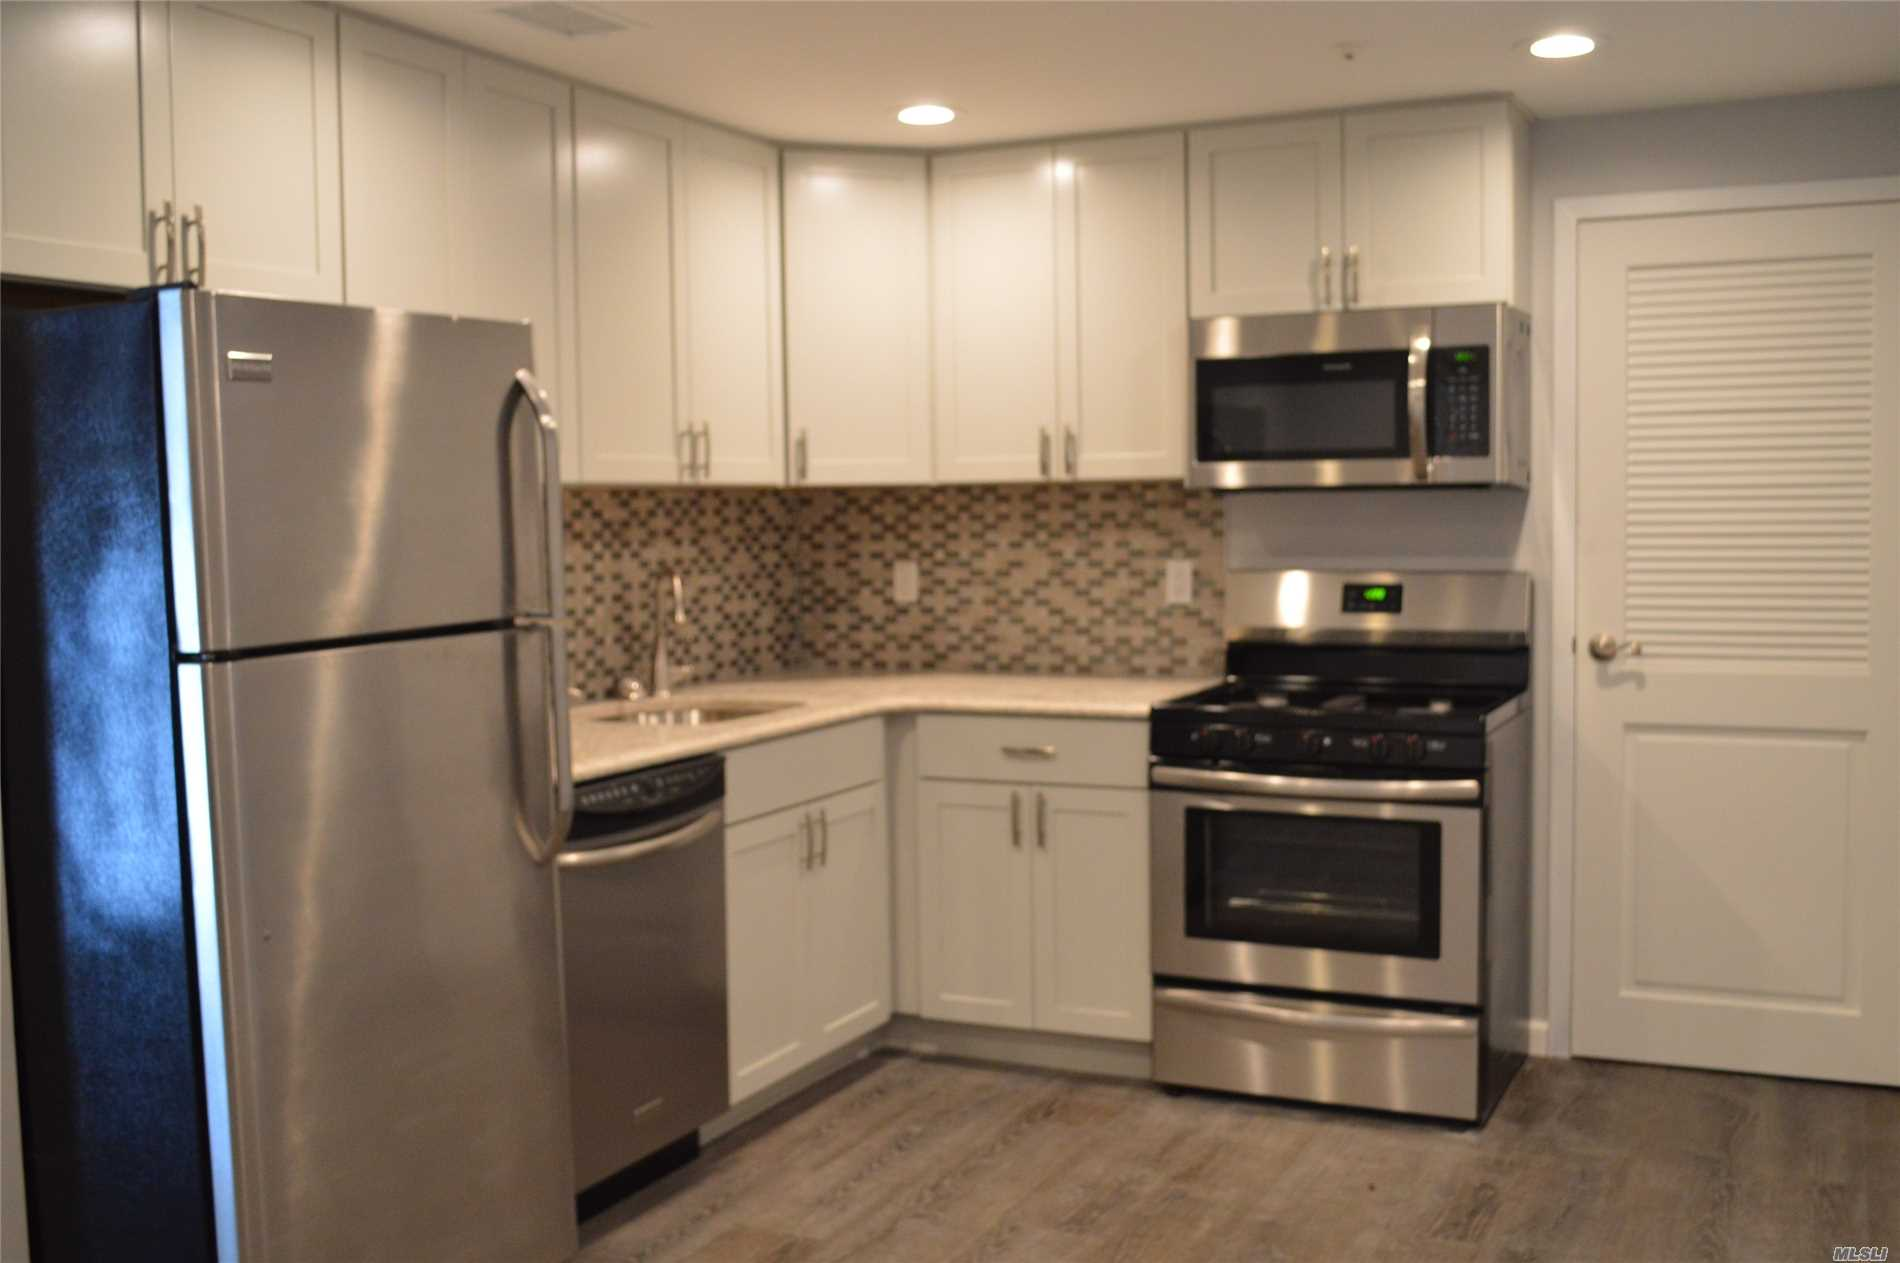 Completely Renovated! Everything Is New, Including Kitchen And Appliances, Both Baths & All Flooring!!! Great Community With Club House, Indoor & Outdoor Pools, Golf, Gym, Sauna & Tennis Courts. The Club House Is A Short Walk From This Home. Good Credit Score Is A Must For This Landlord.